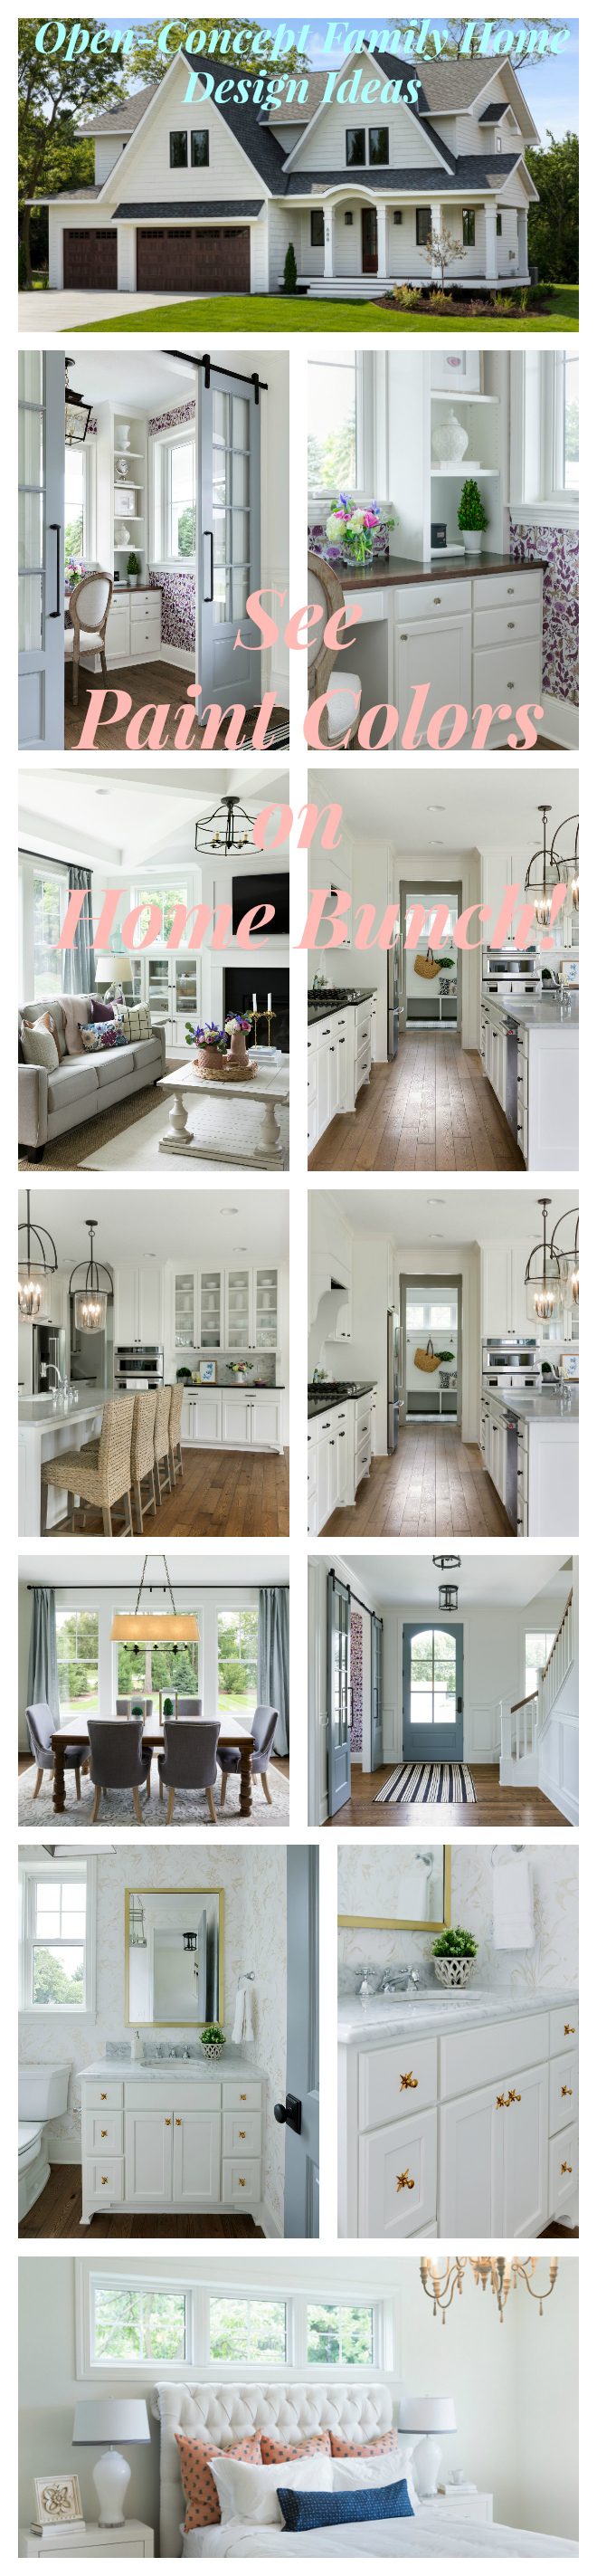 Open-Concept Family Home Design Ideas. See paint colors on Home Bunch